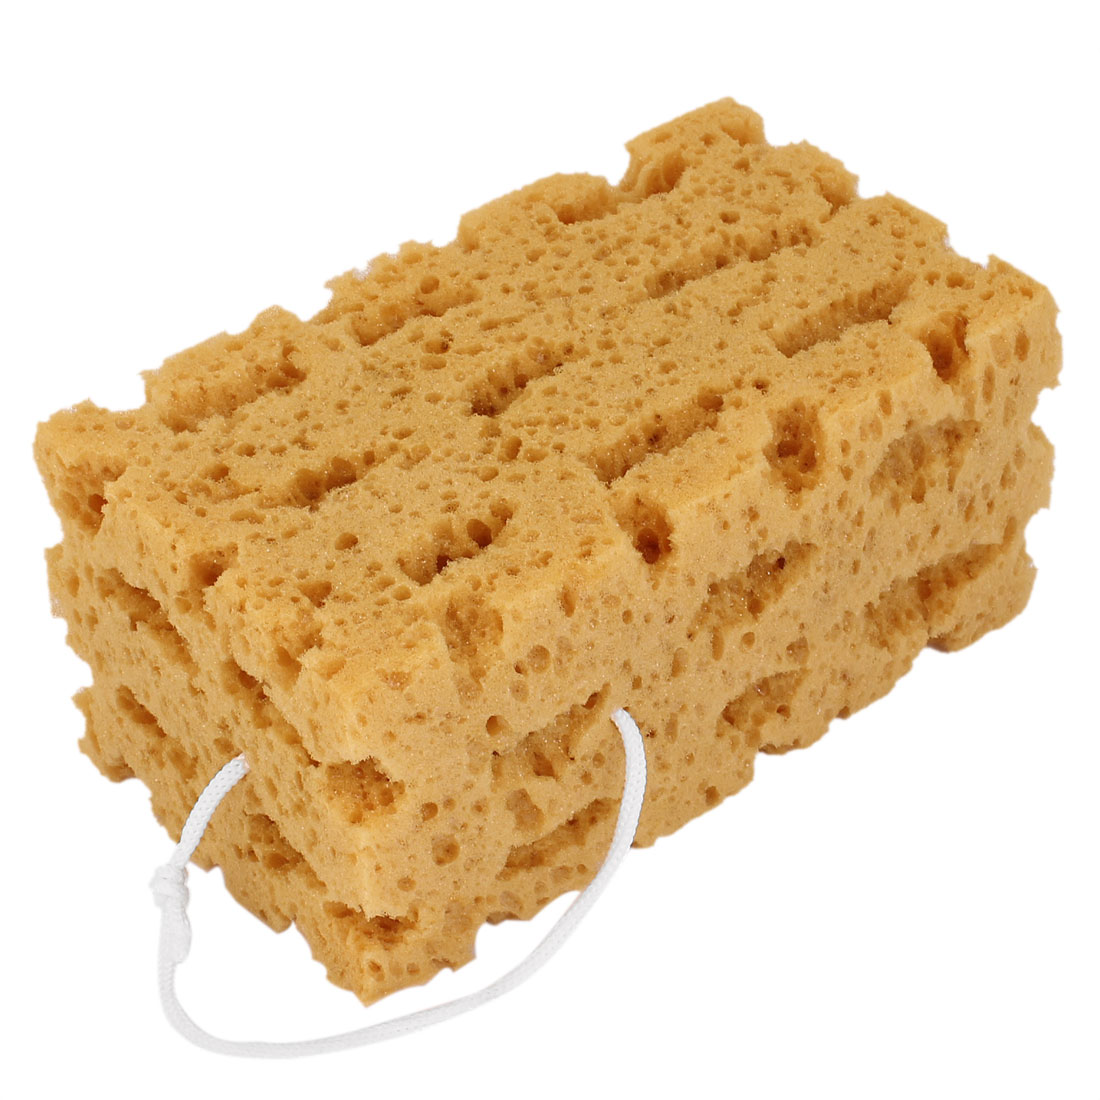 Brown Clean Washing Tool Rectangular Coral Sponge for Cleaner Car Vehicle